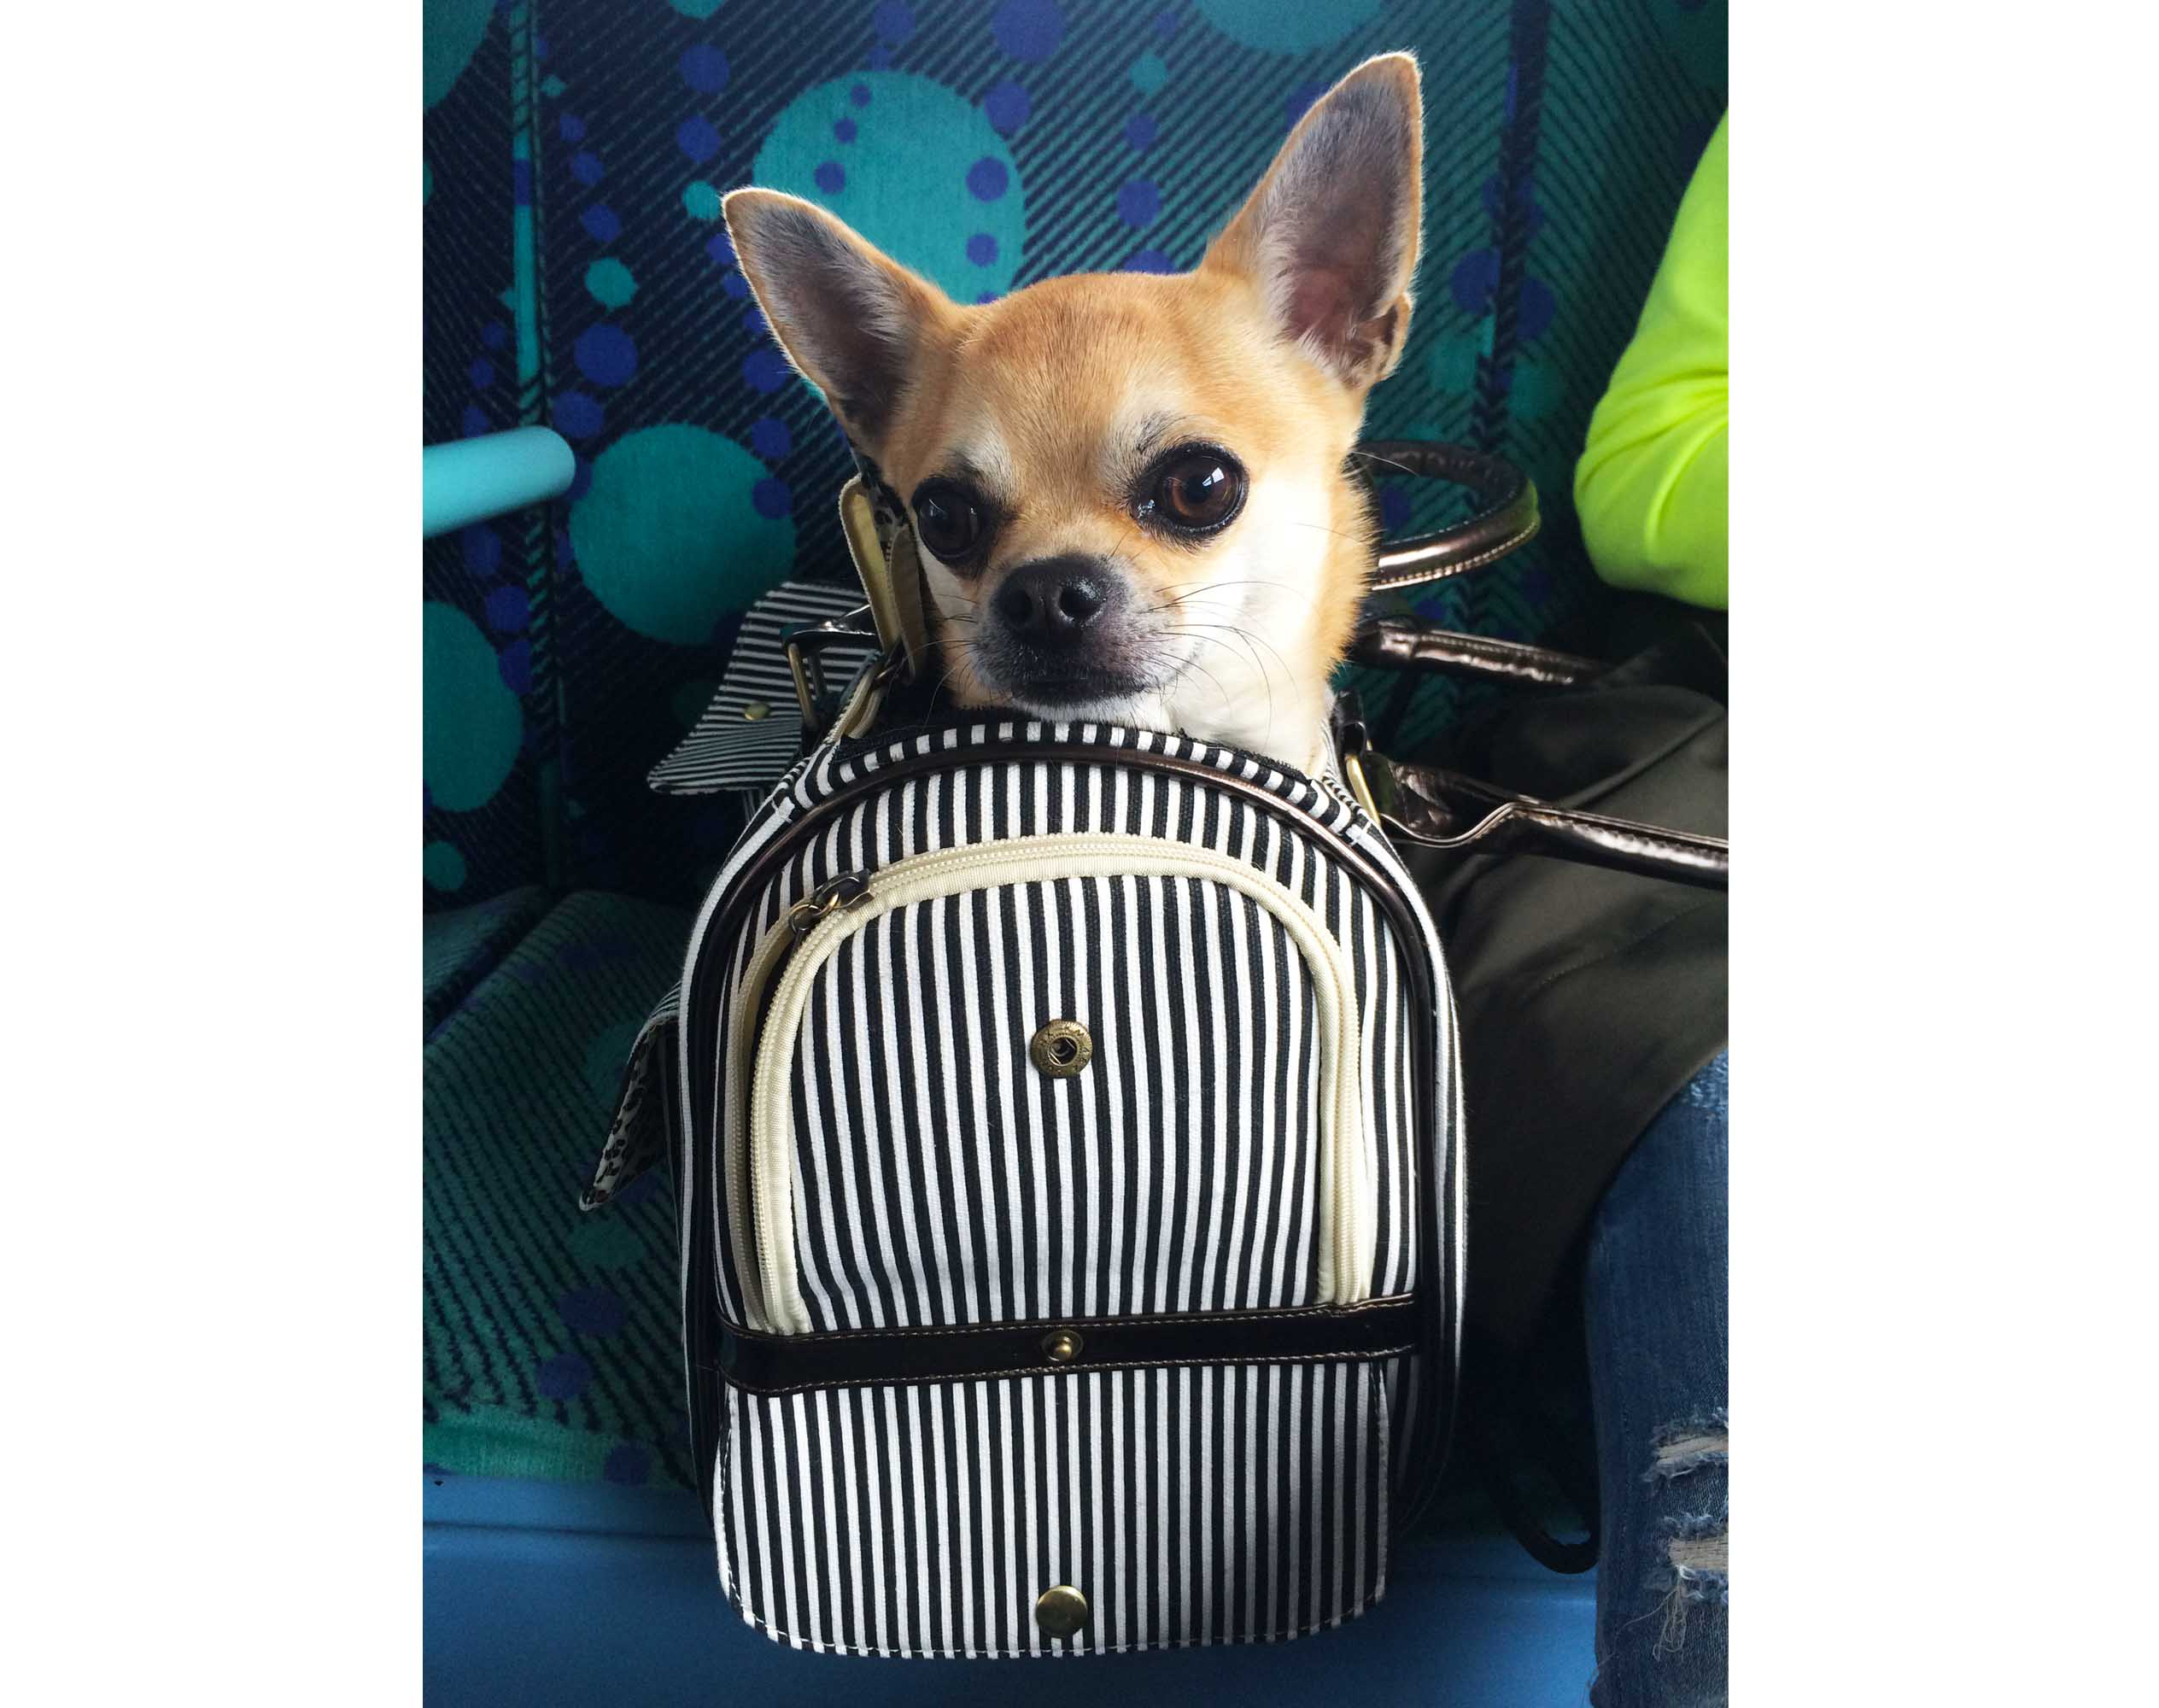 Dog Blog Update: My New Bag